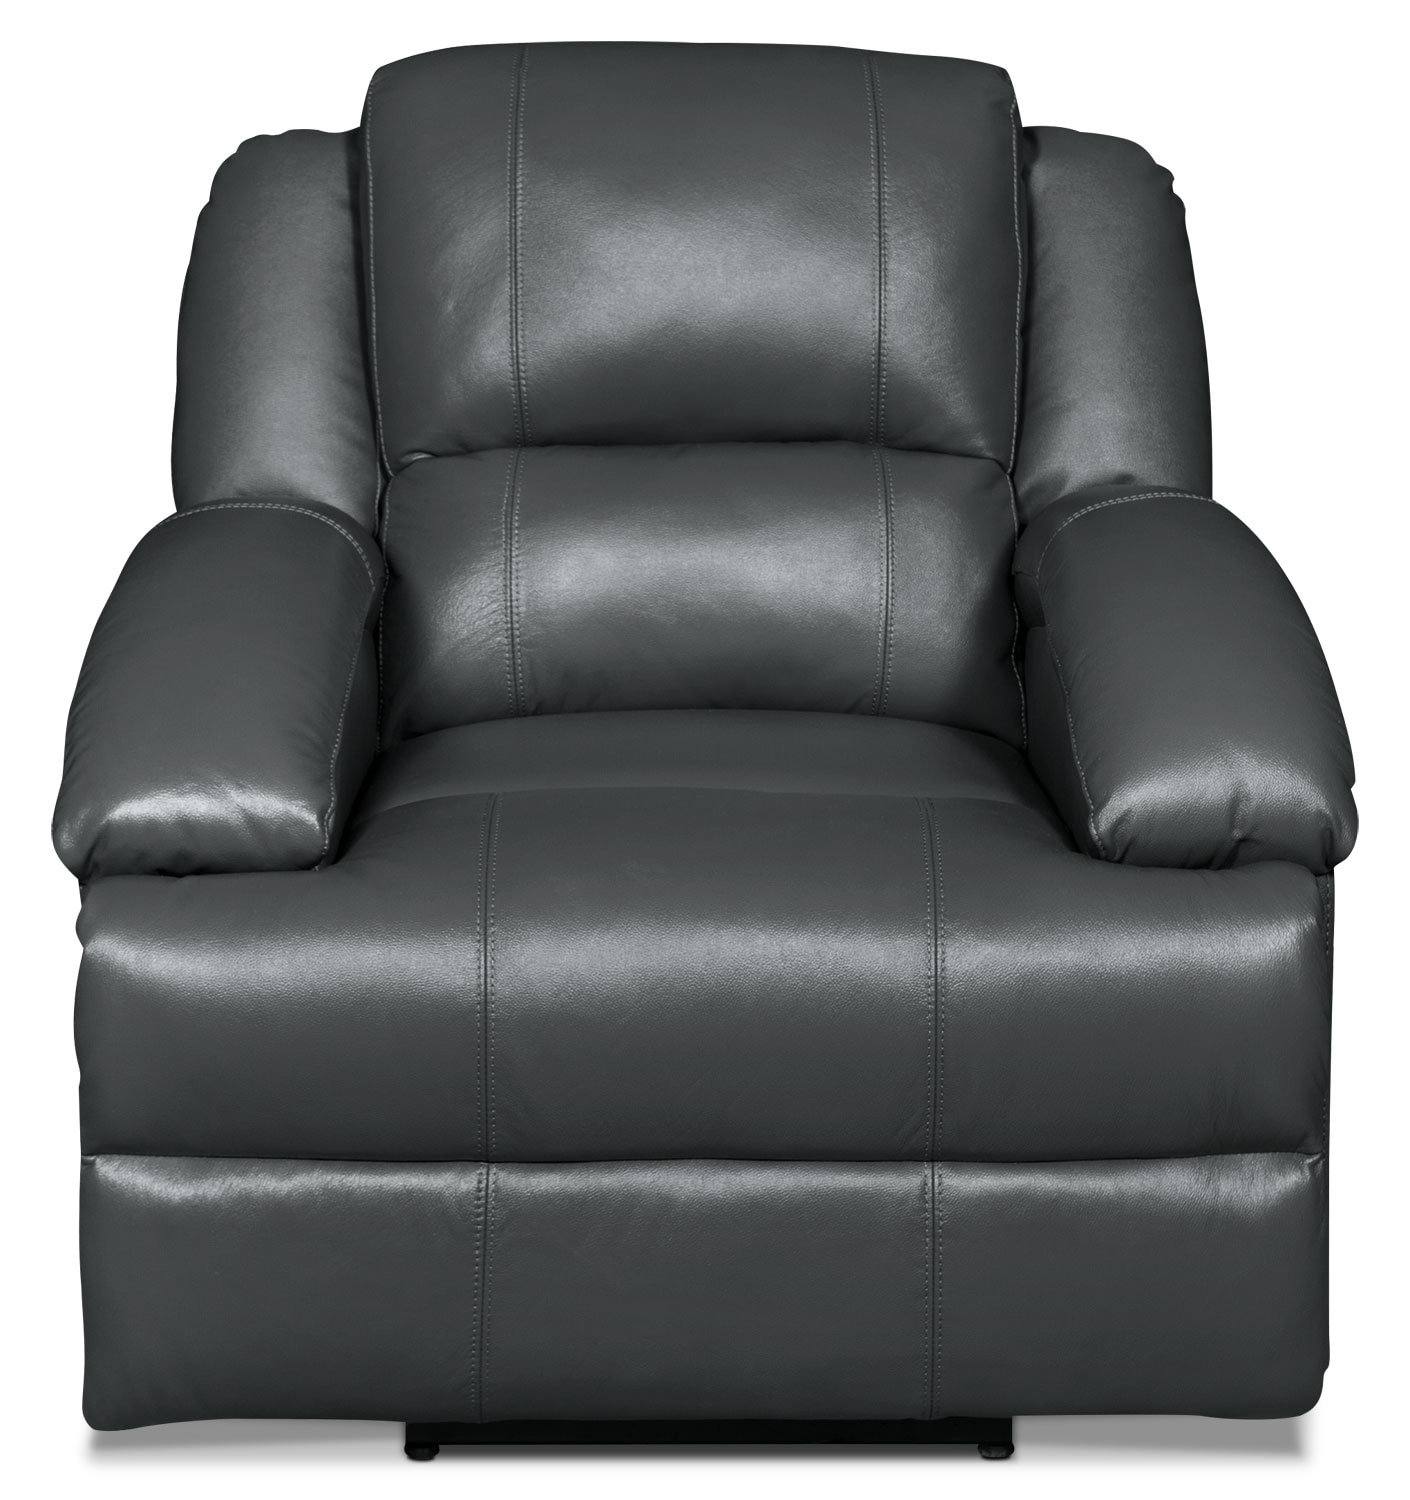 Living Room Furniture - Luka Genuine Leather Power Reclining Chair - Grey